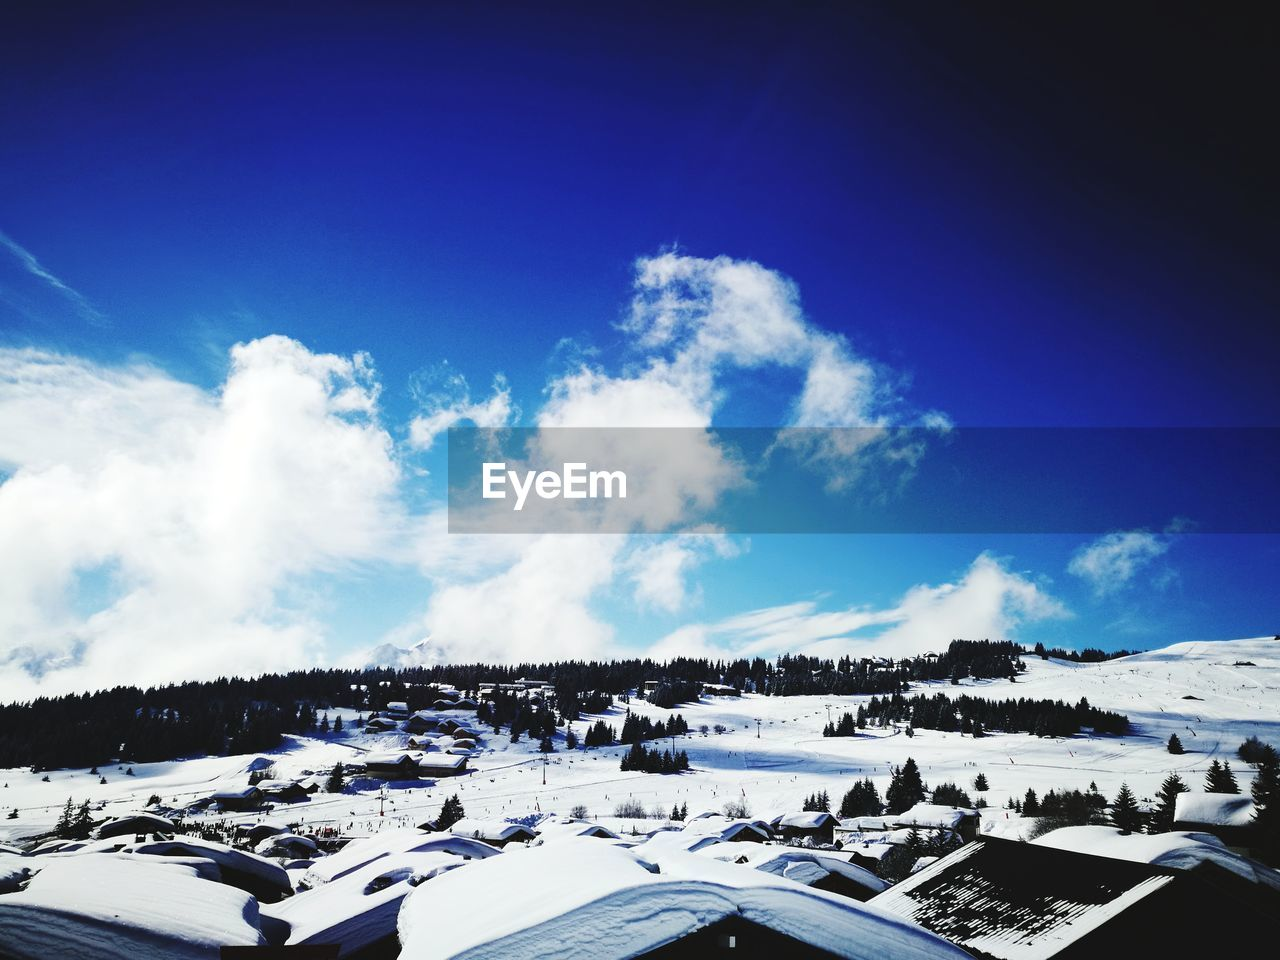 snow, winter, cold temperature, nature, weather, blue, cloud - sky, sky, scenics, white color, beauty in nature, day, outdoors, landscape, sunlight, mountain, tranquility, vacations, ski holiday, no people, ski lift